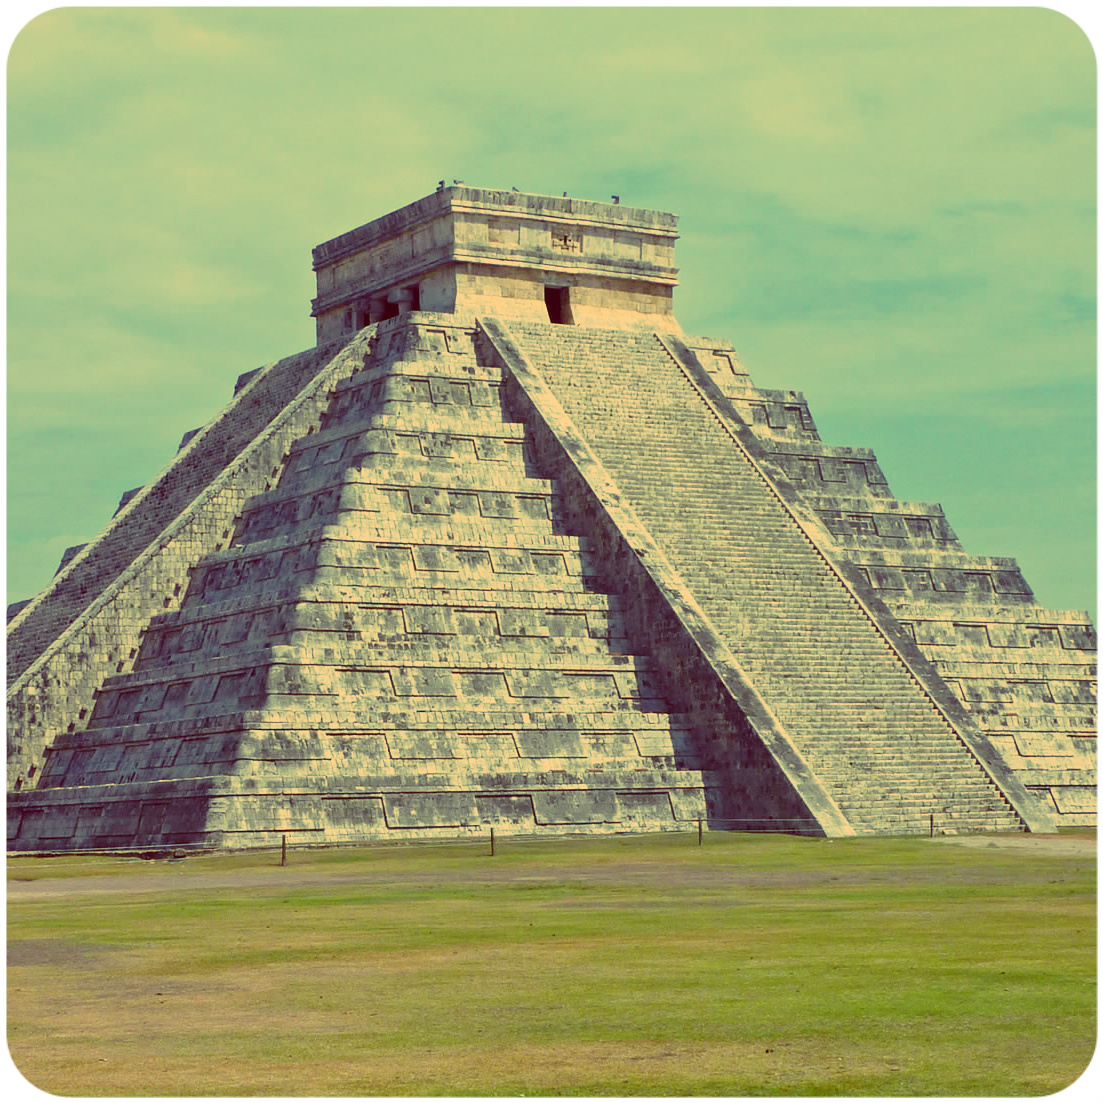 Real life examples of square pyramid